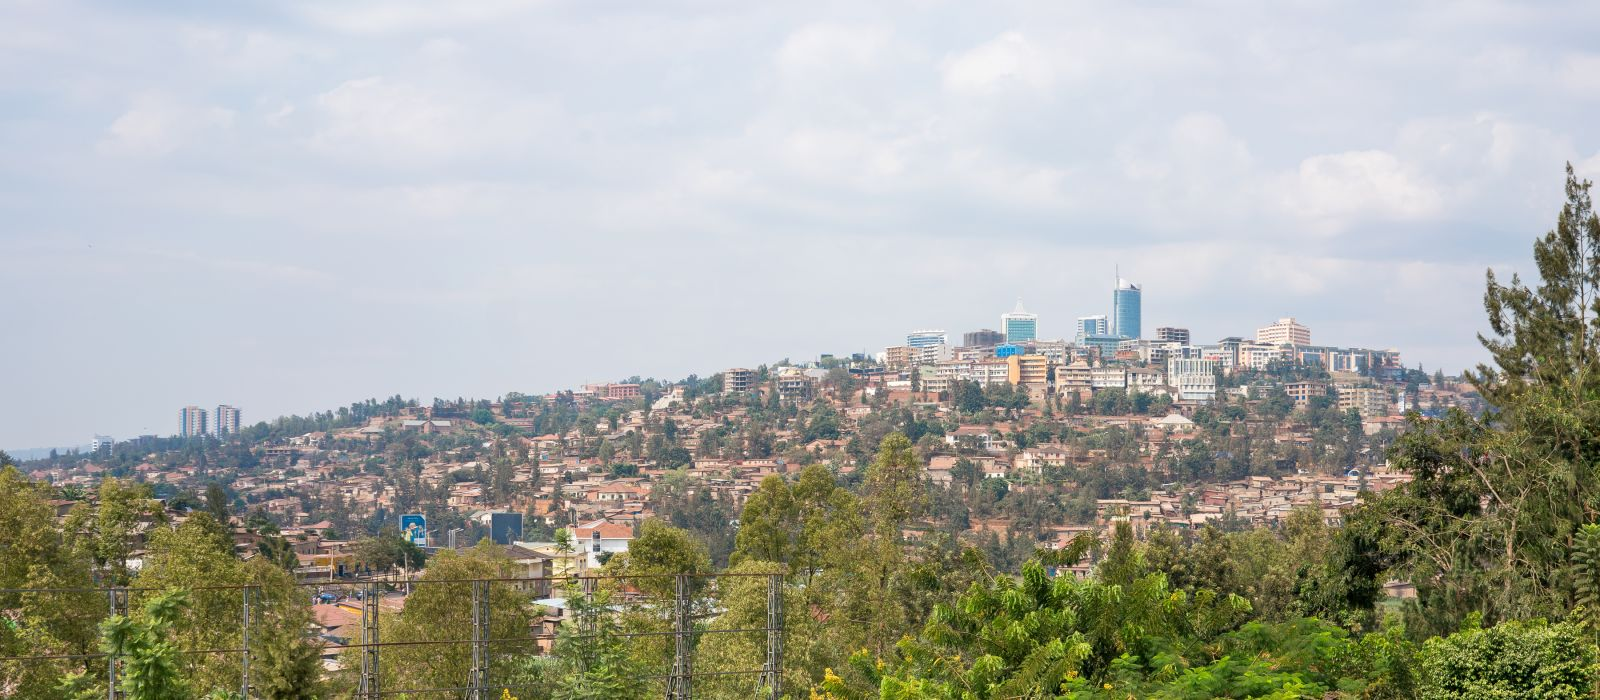 Bird's eye view of the buildings of downtown Kigali